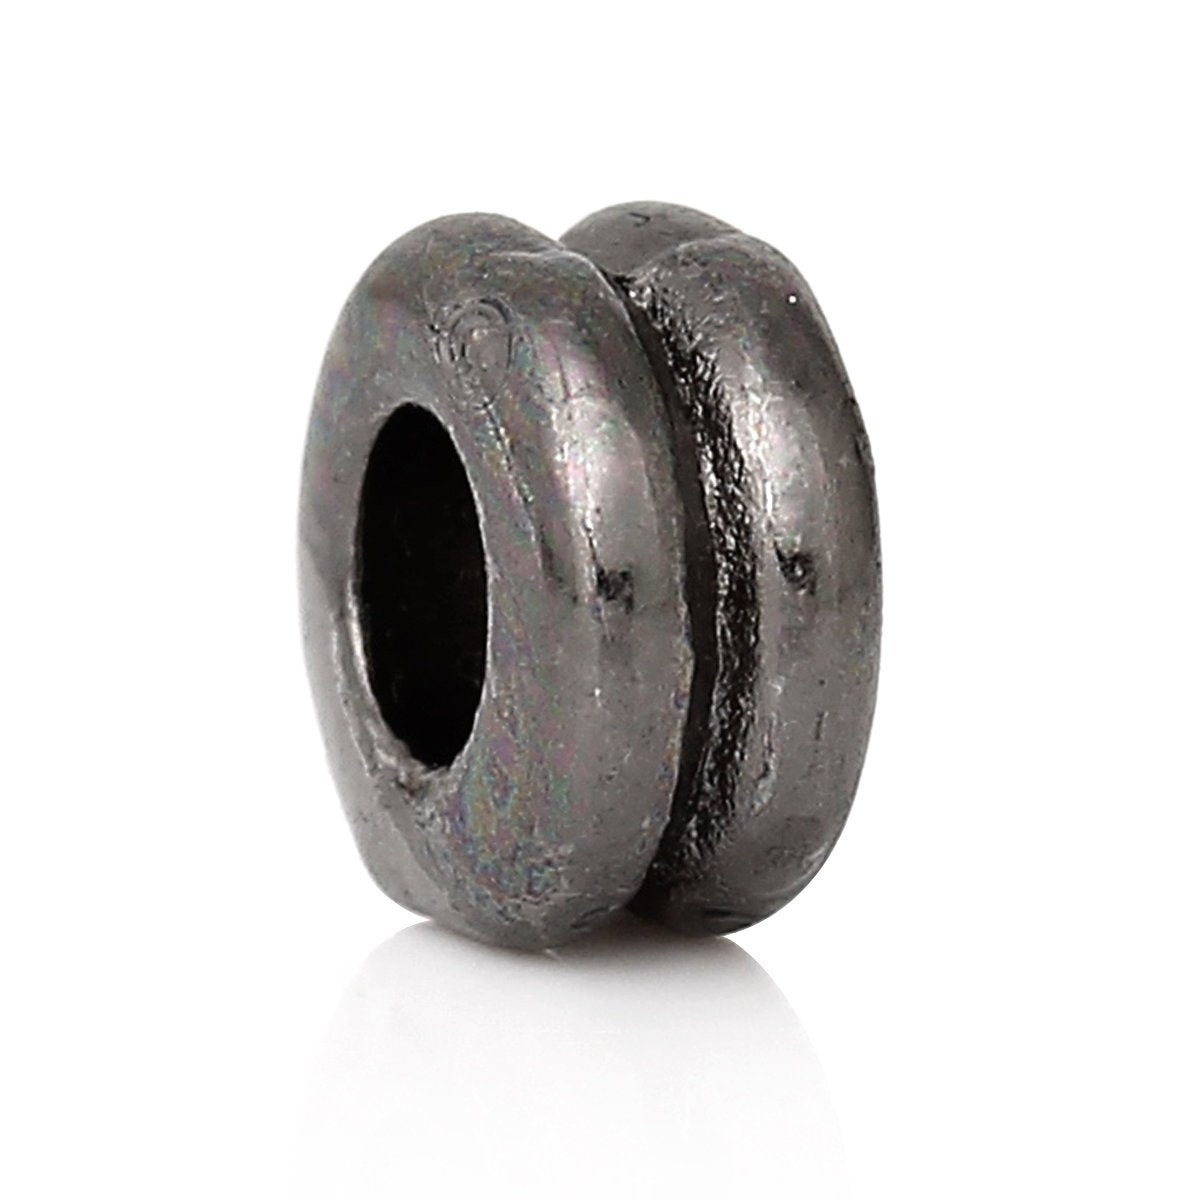 Slider Spacer Beads - Gunmetal 6.0mm x 3.0mm